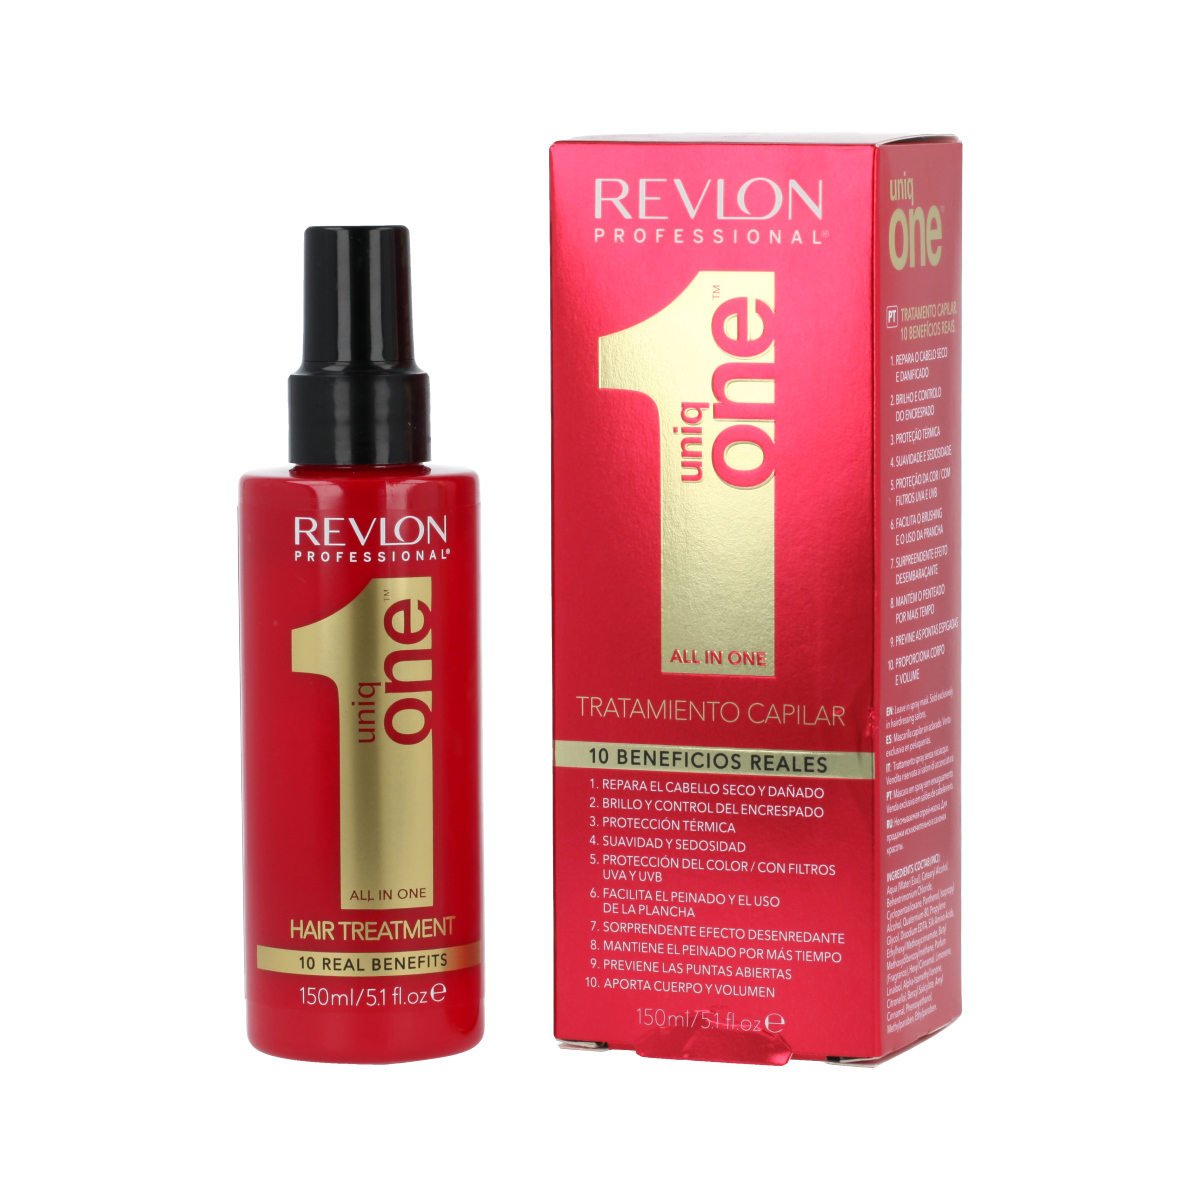 Revlon Professional Revlon Uniq One All In One Hair Treatment 150 ml 93415